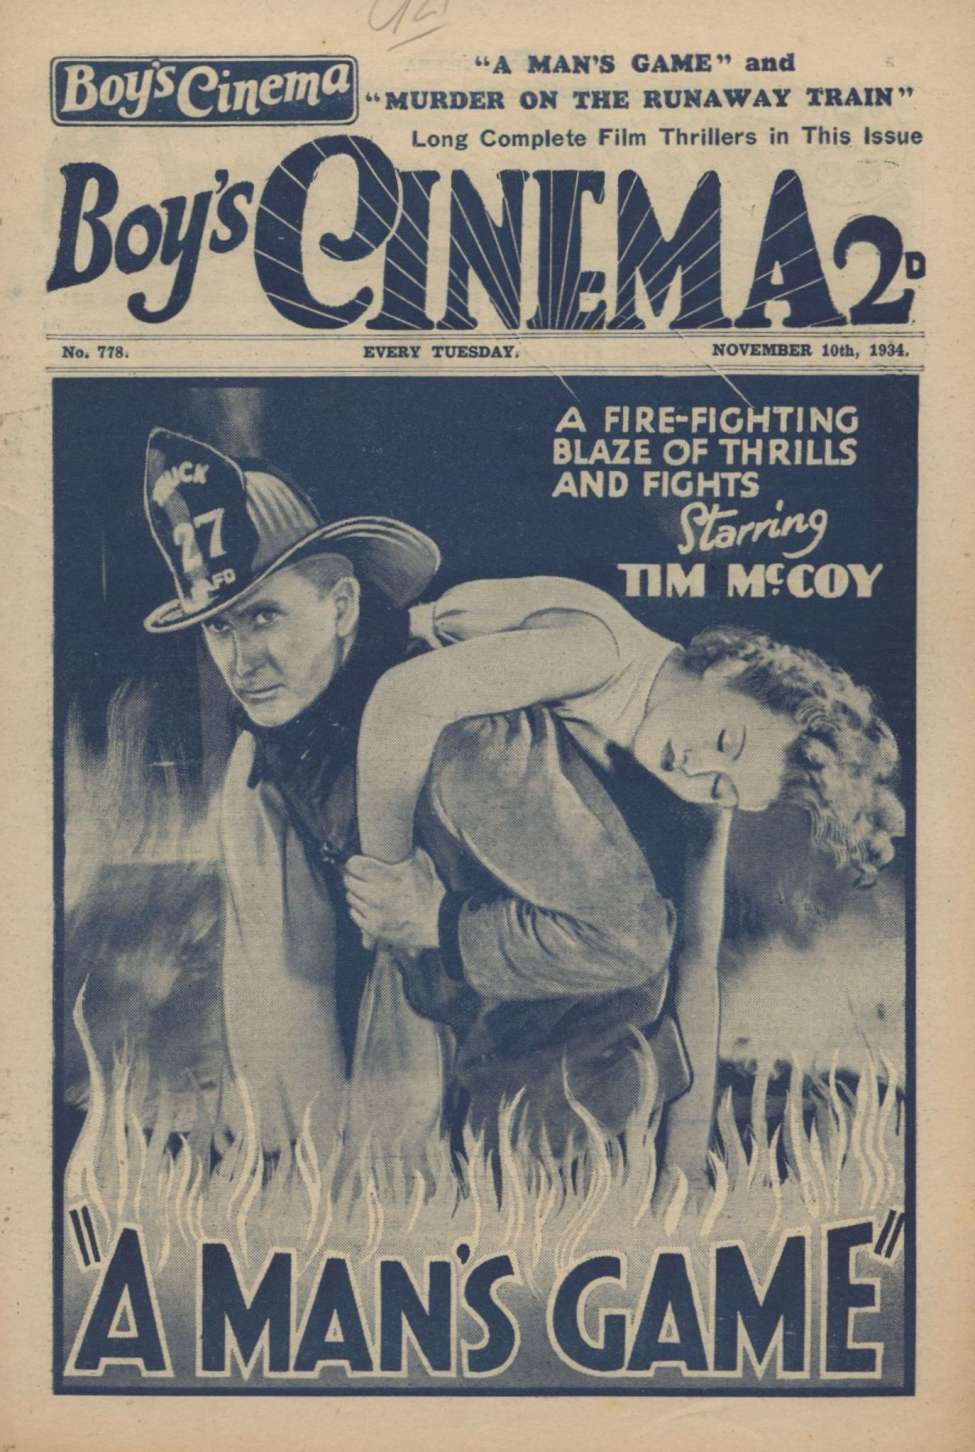 Comic Book Cover For Boy's Cinema 0778 - A Man's Game starring Tim McCoy